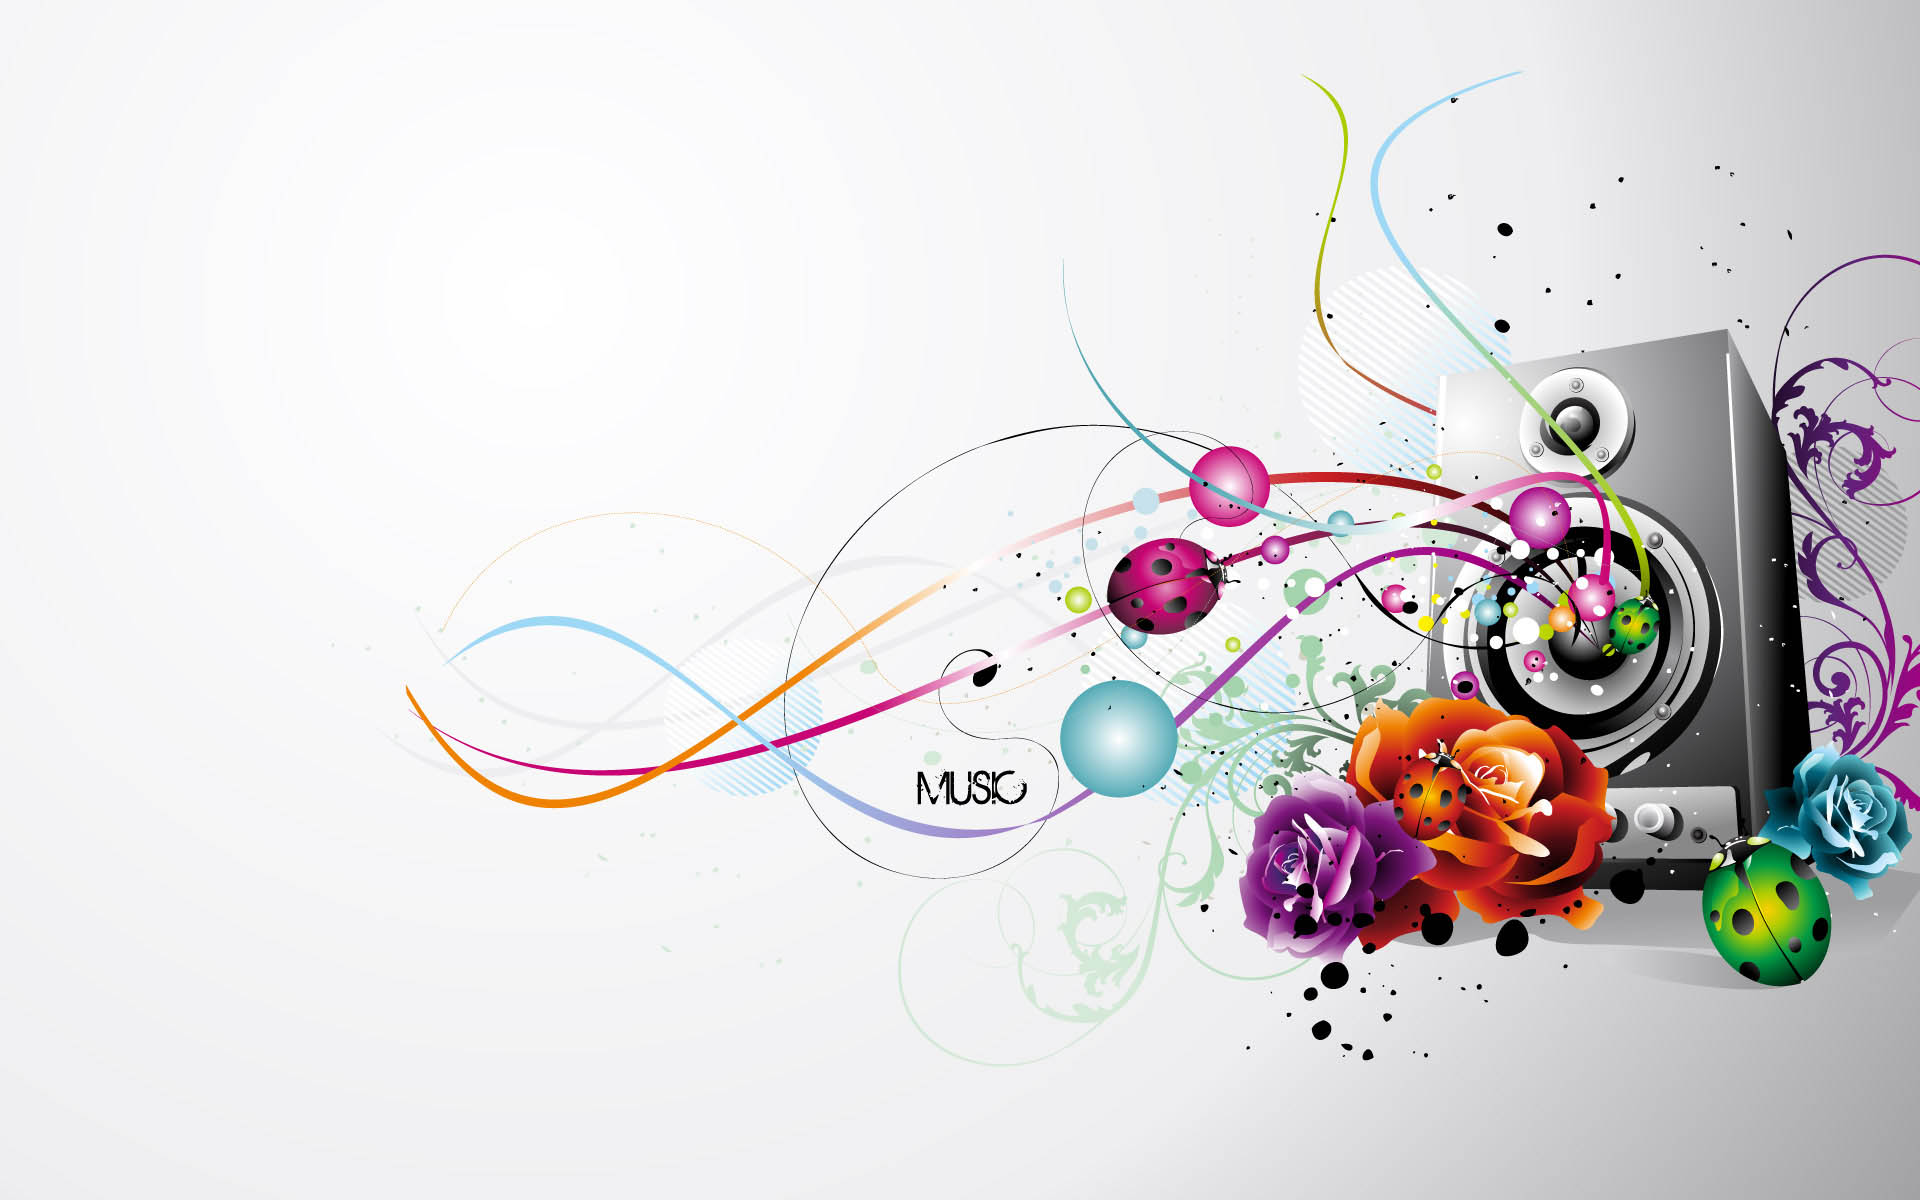 music-wallpaper-13.jpg